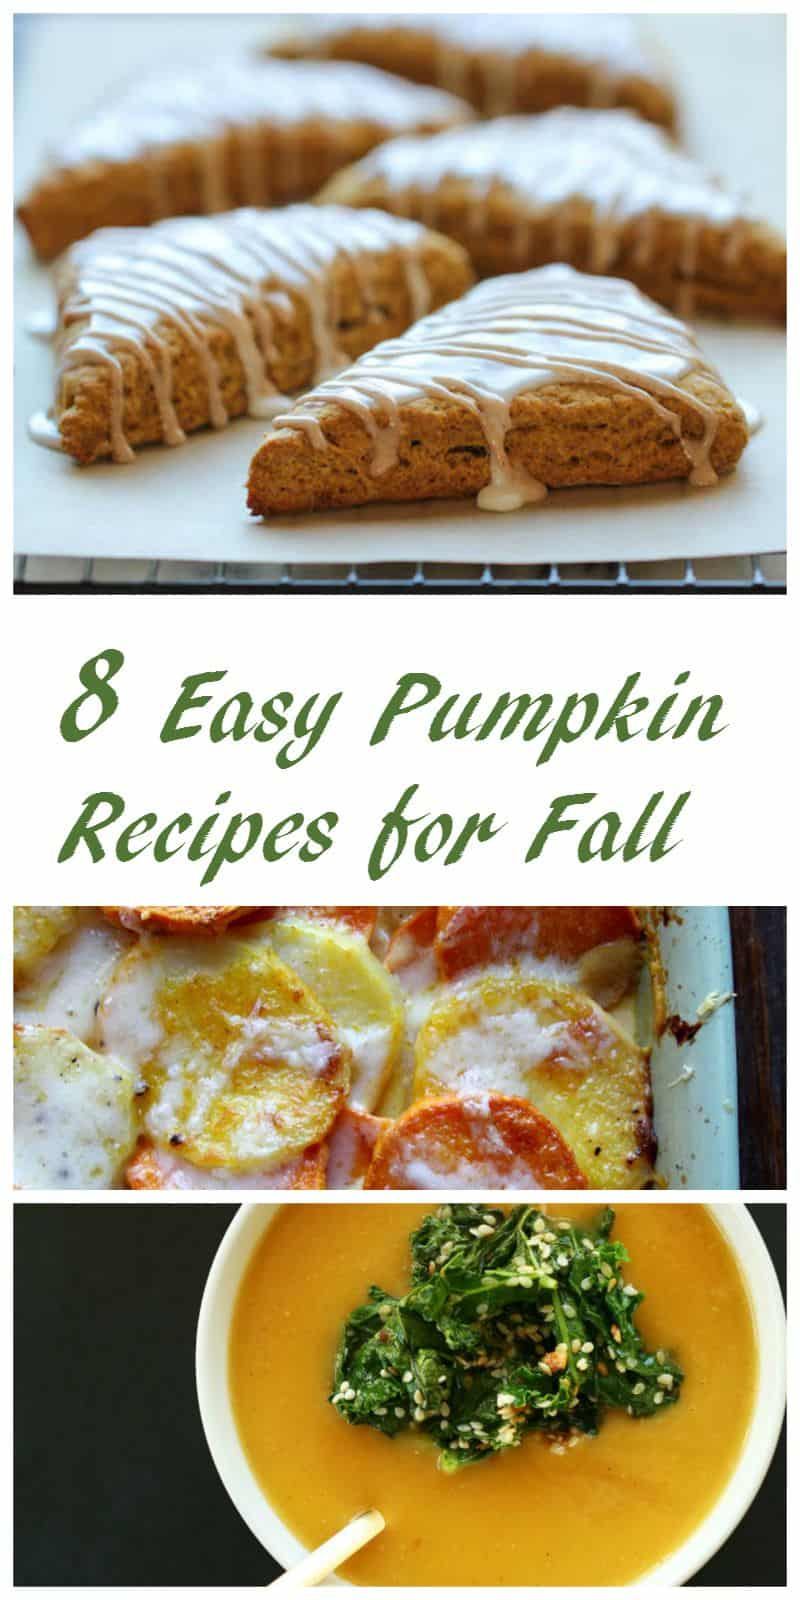 easy pumpkin recipes for fall 800x1600 2